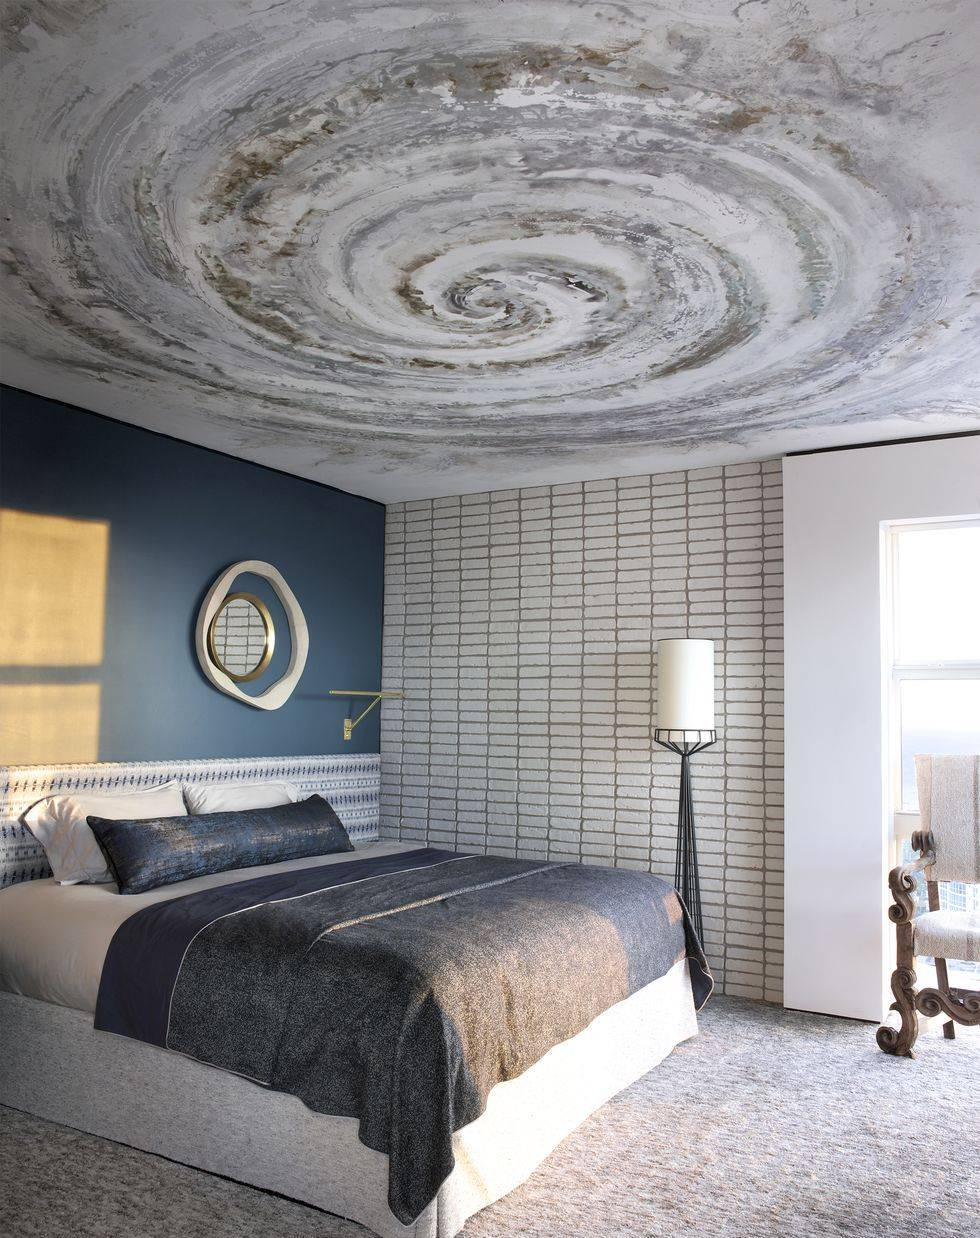 Bedroom with spiral painting on the ceiling